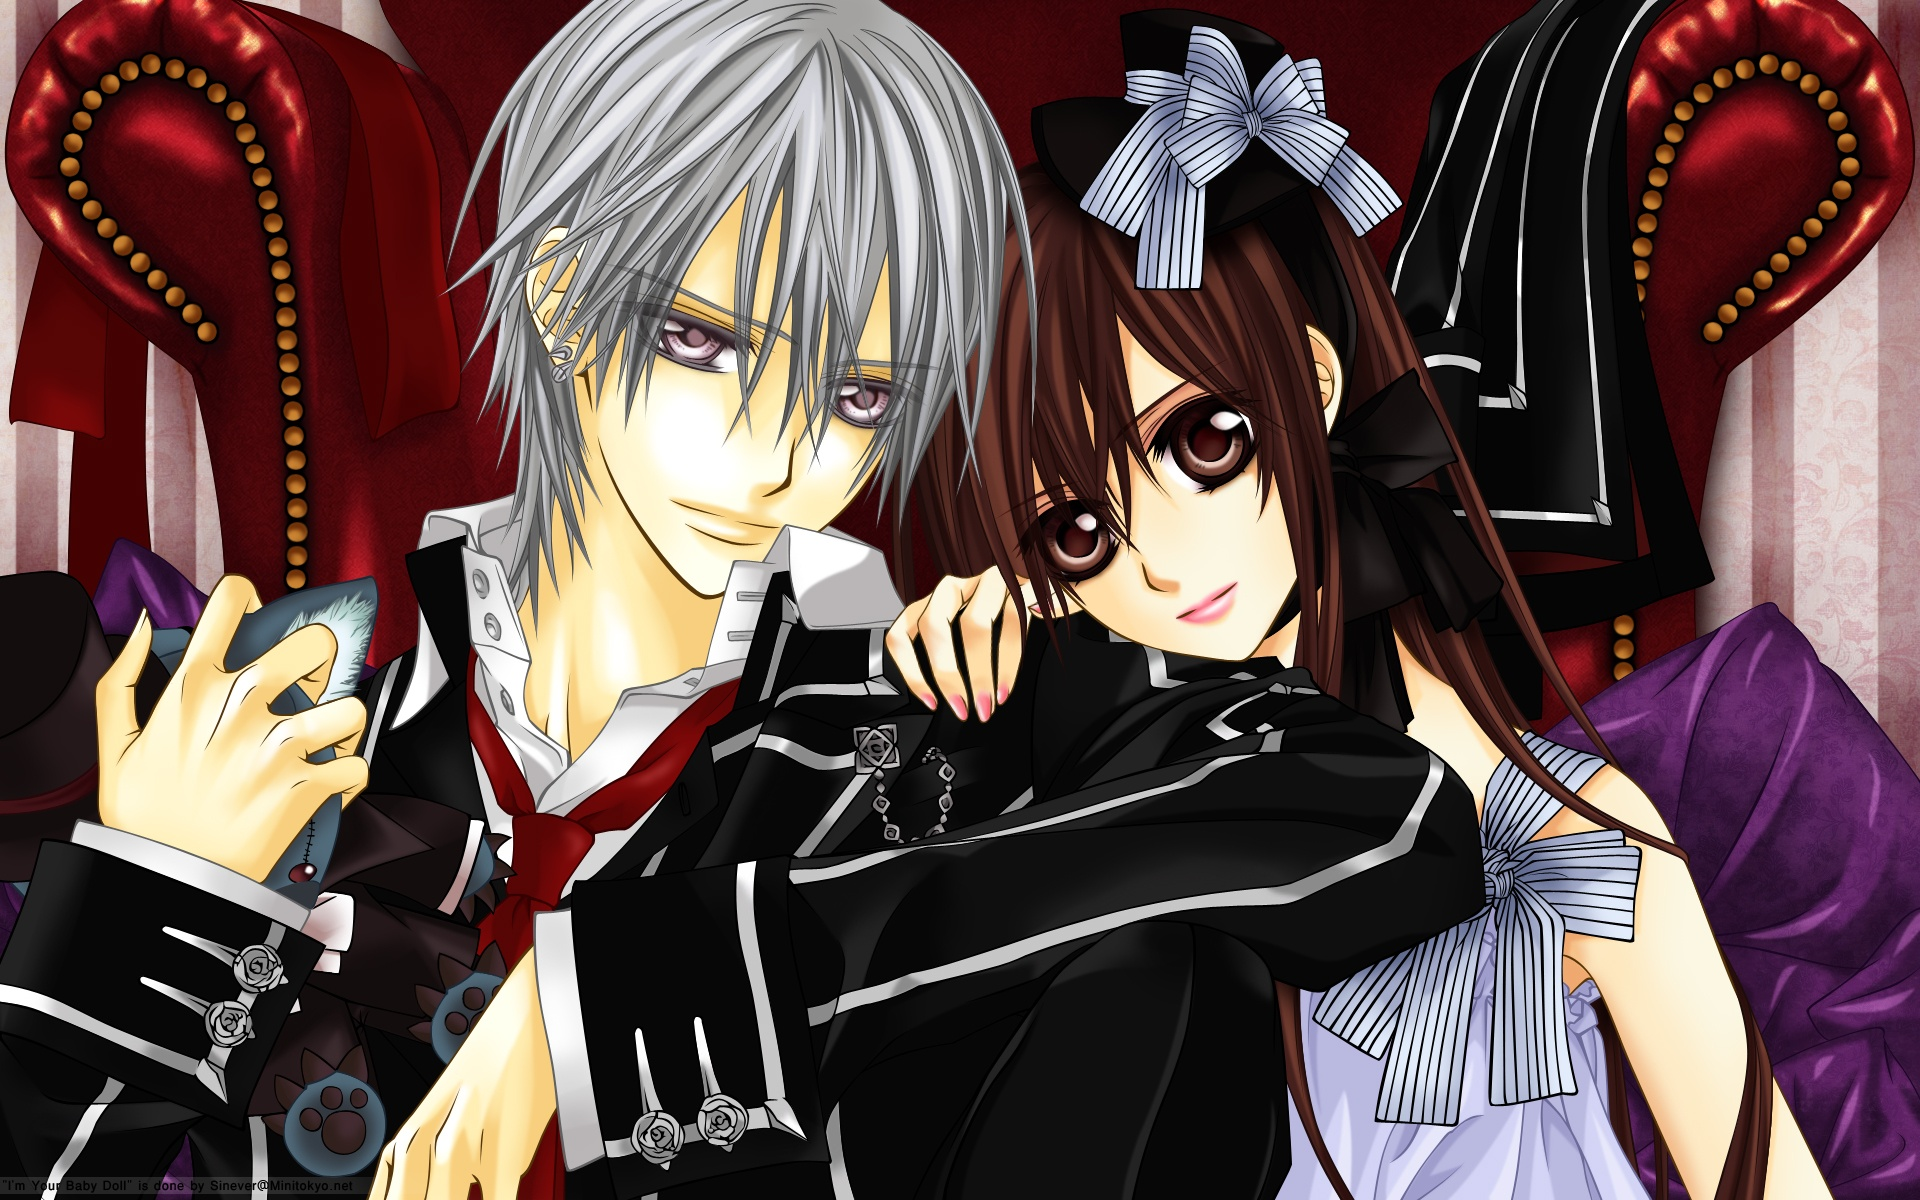 Anime Couple HD Wallpaper - WallpaperSafari